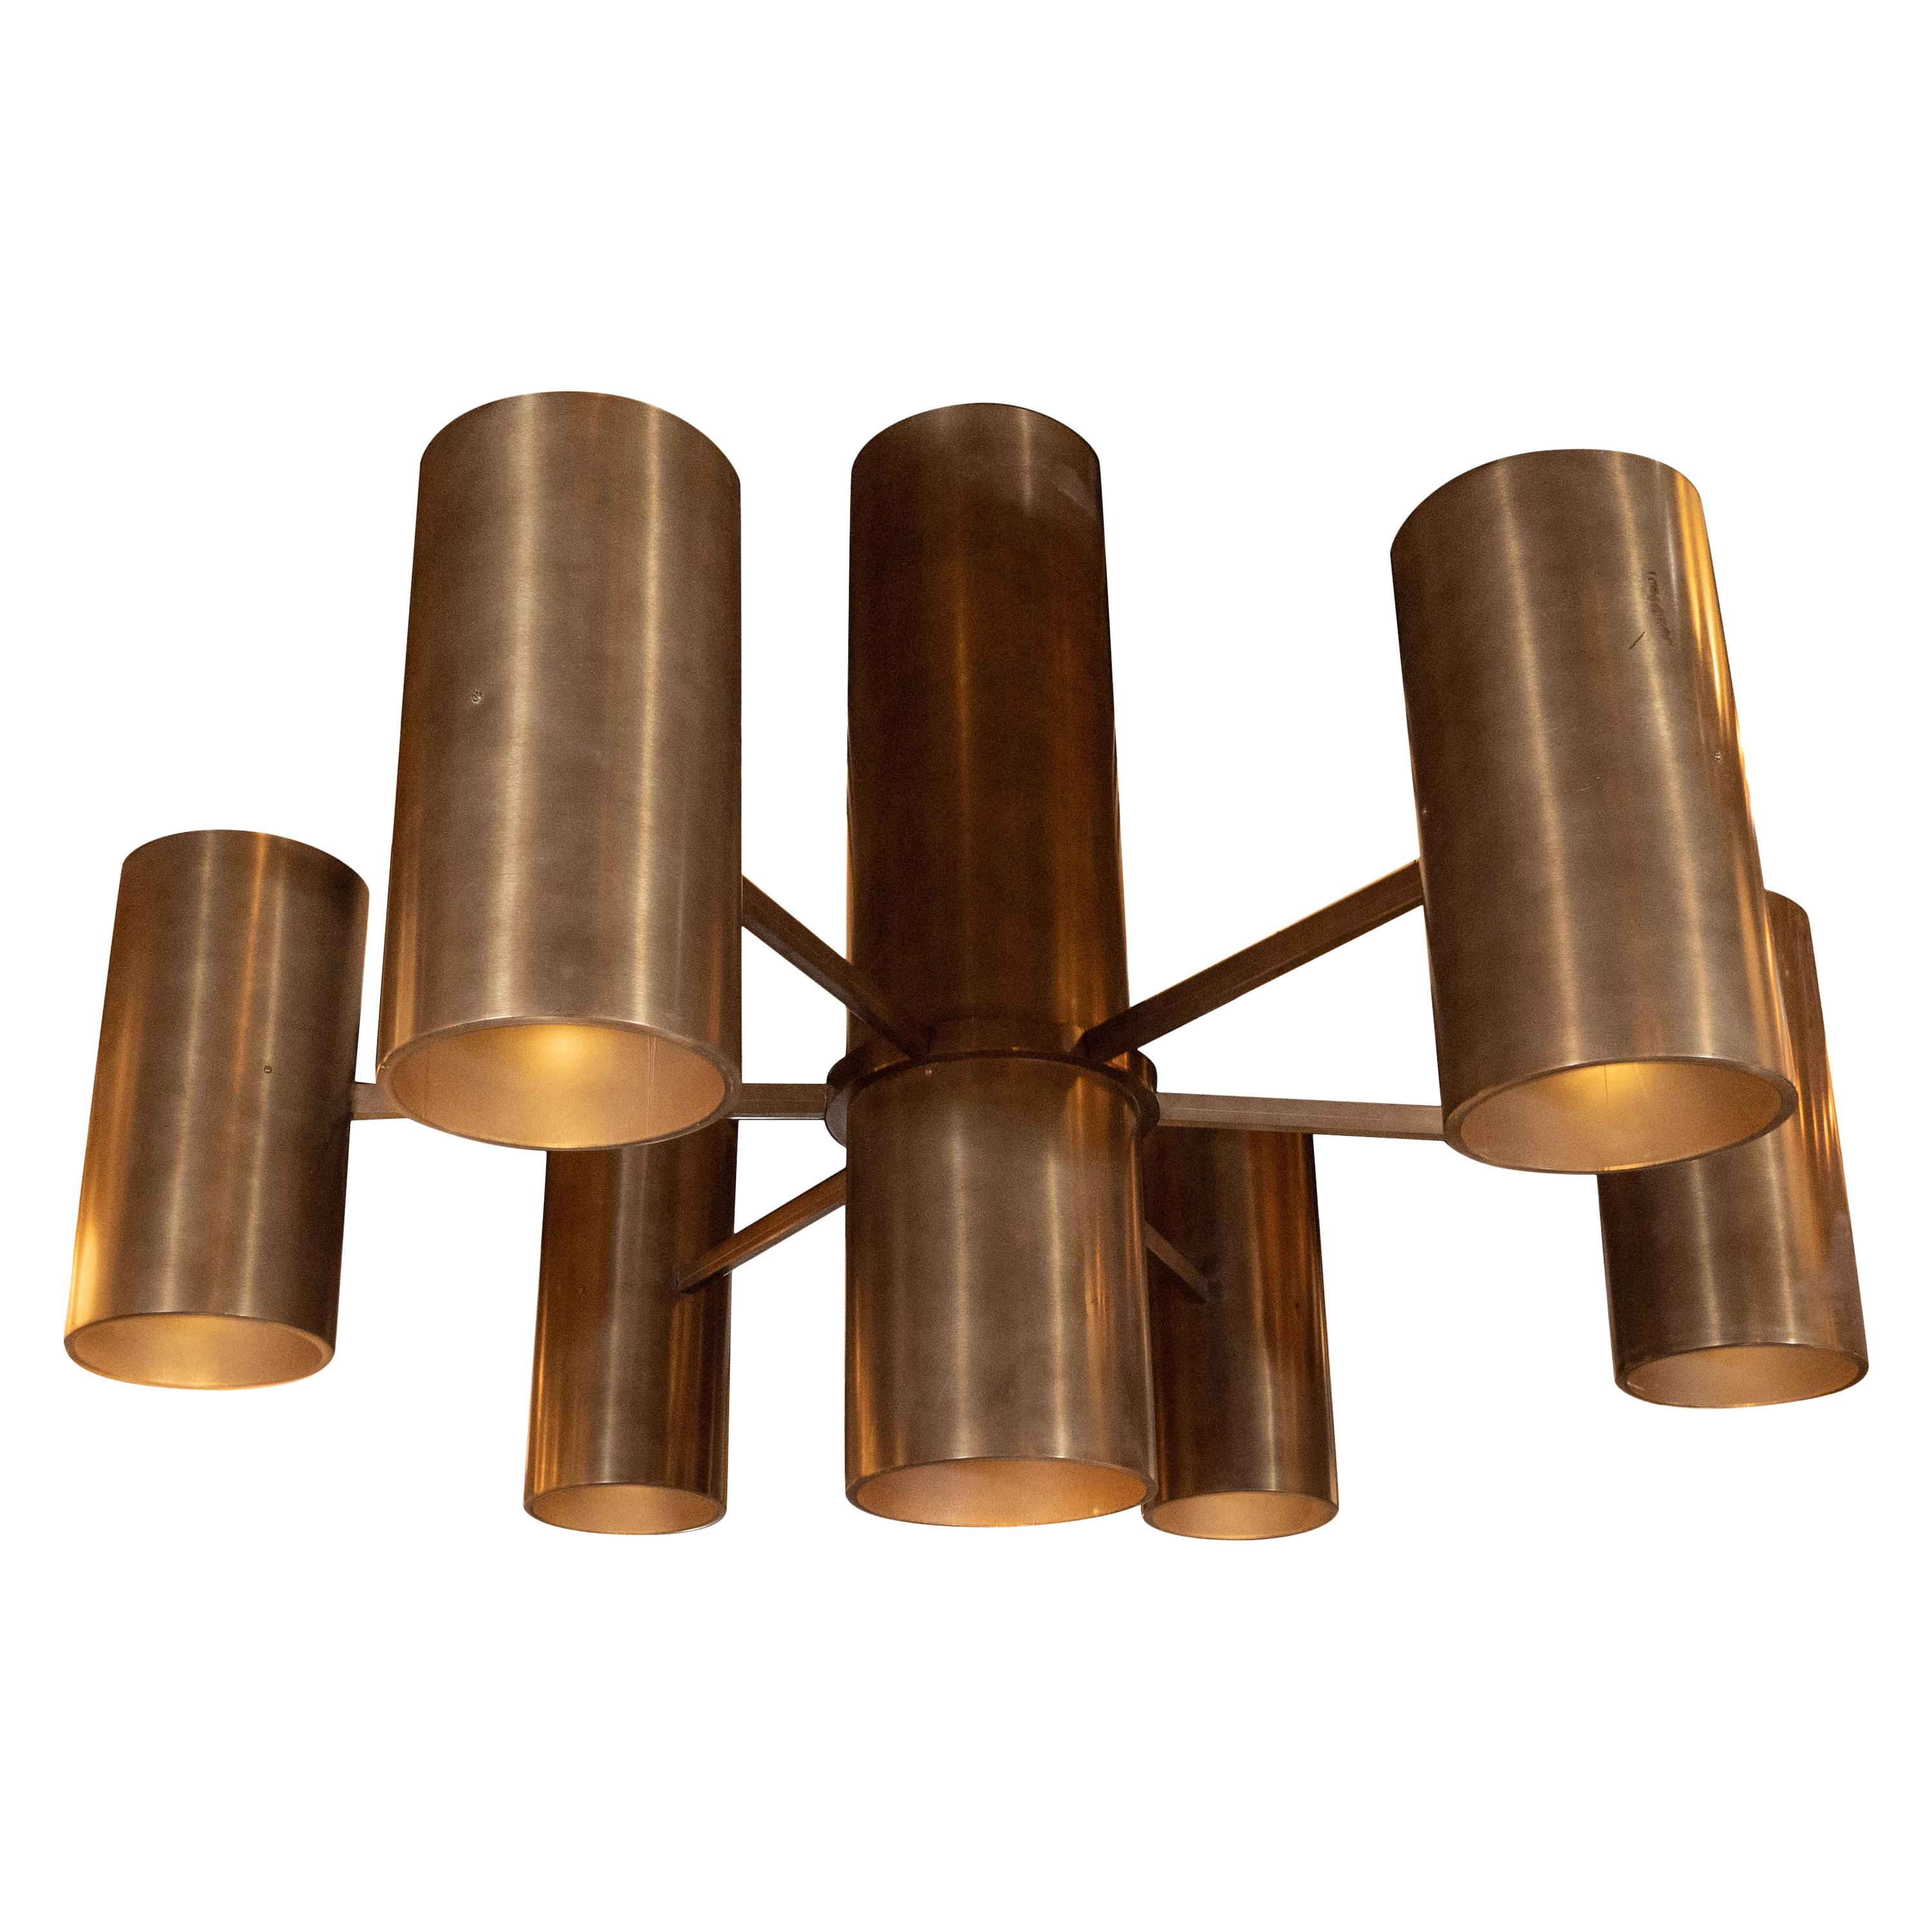 Monumental Minimalist Six-Arm Oil Rubbed Bronze Cylindrical Form Chandelier